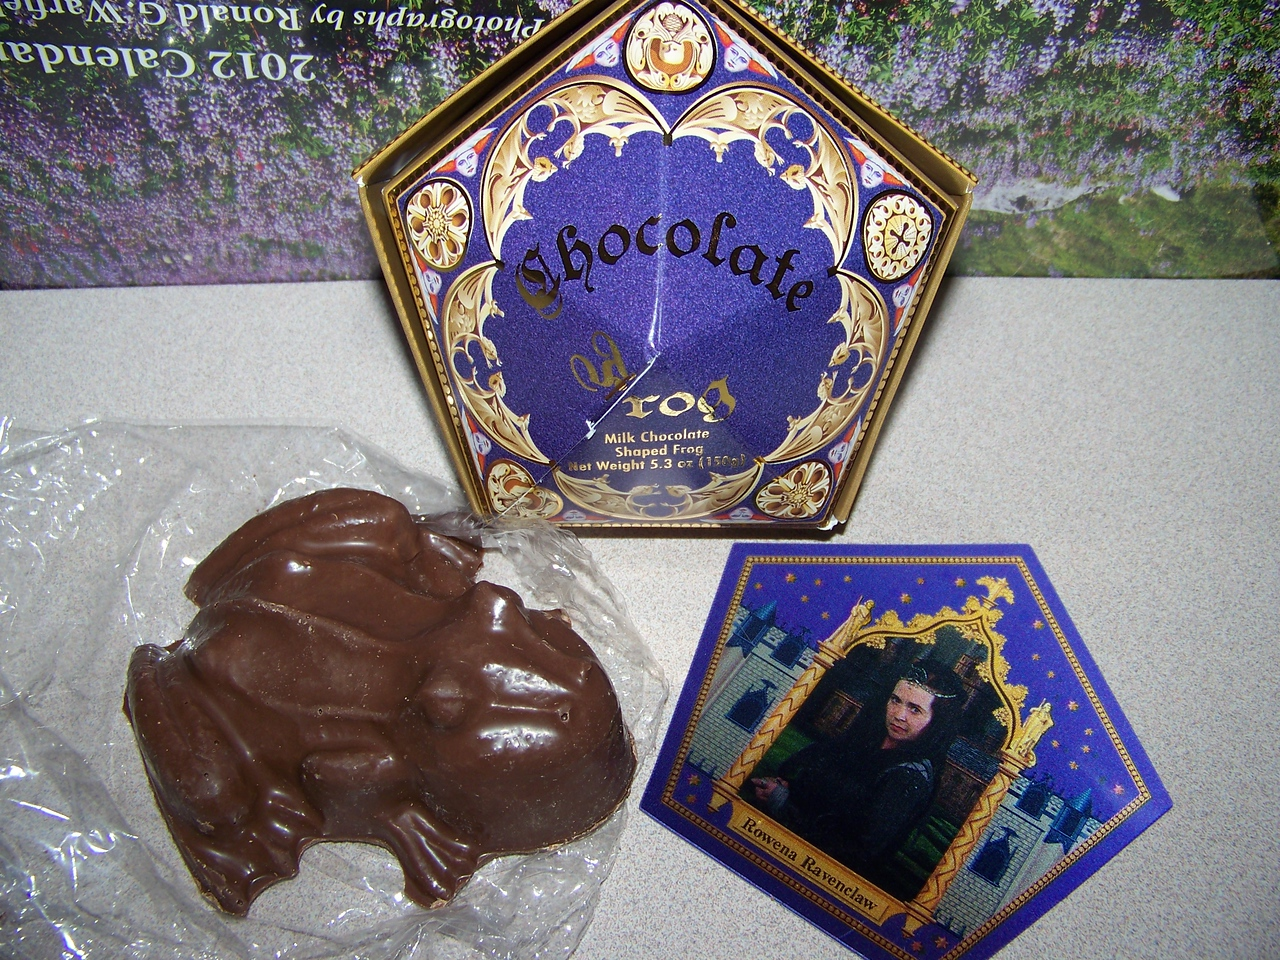 I purchased a Chocolate Frog at Honeydukes.  When I got home I opened the box (seen at top).  It contained a large frog, which was delicious, but it didn't go hopping about like the ones Harry and Ron bought, darnit!  :-)  It did include a wizard trading card, and mine featured Rowena Ravenclaw, who was one of the founders of Hogwarts.  Besides the frogs, Honeydukes also sells all manner of magical sweets like Fizzing Whizbees and Bertie Bott's Every Flavour Beans.<br /> [Universal Islands of Adventure - Wizarding World of Harry Potter]